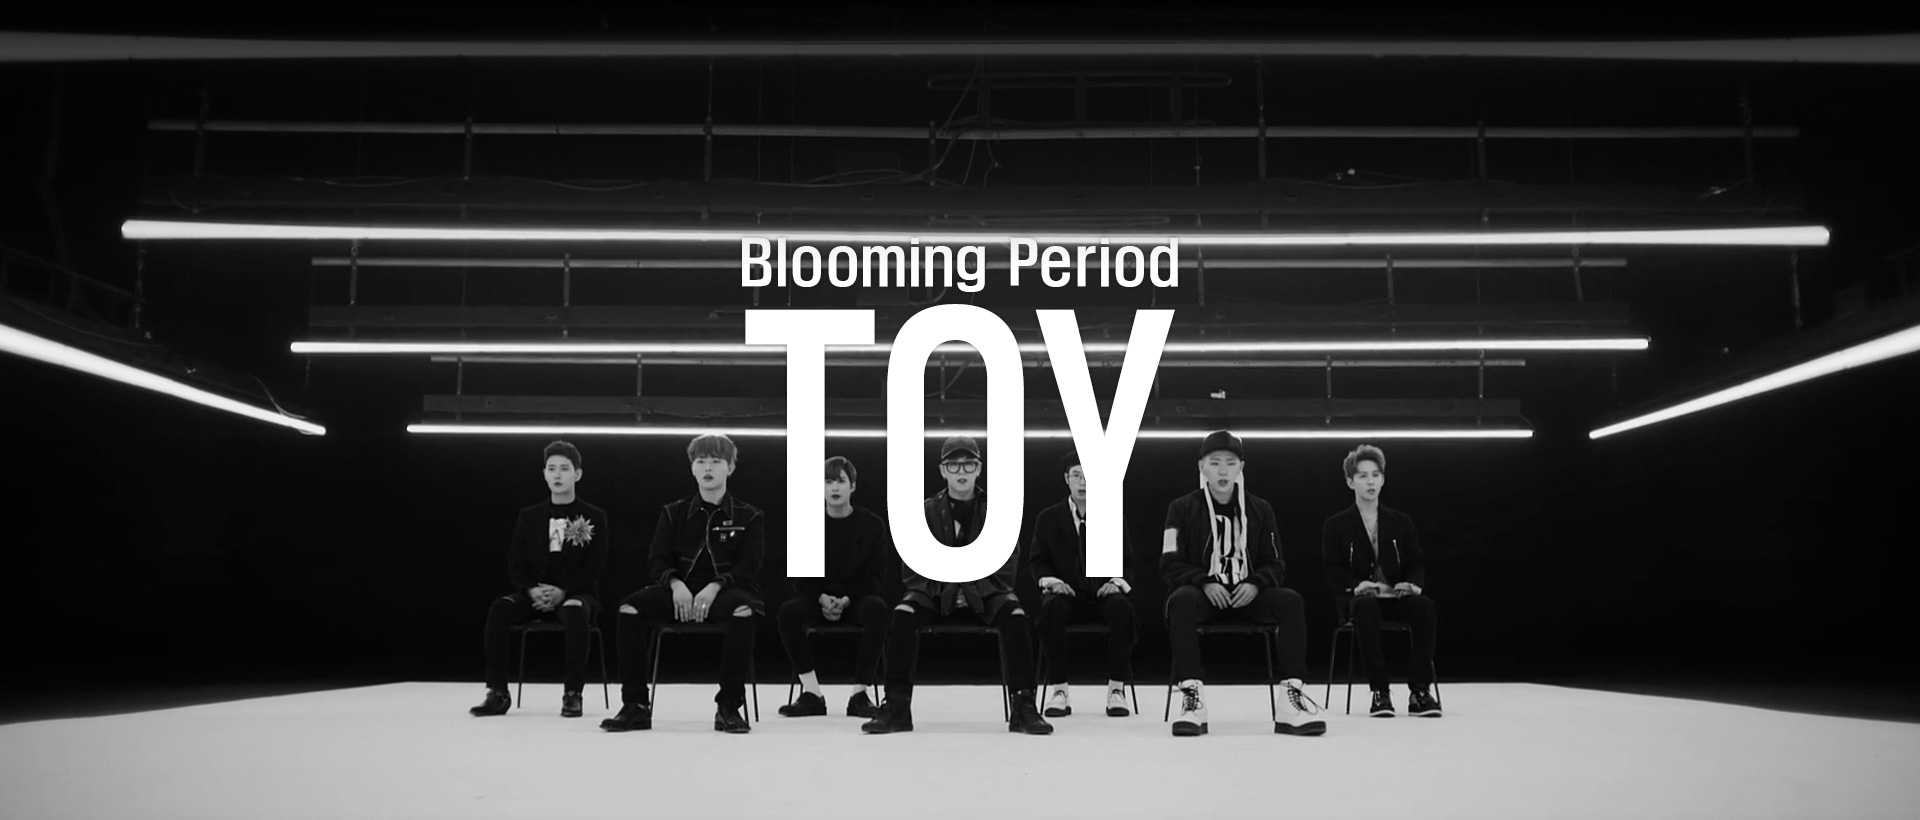 Blooming Period Toy